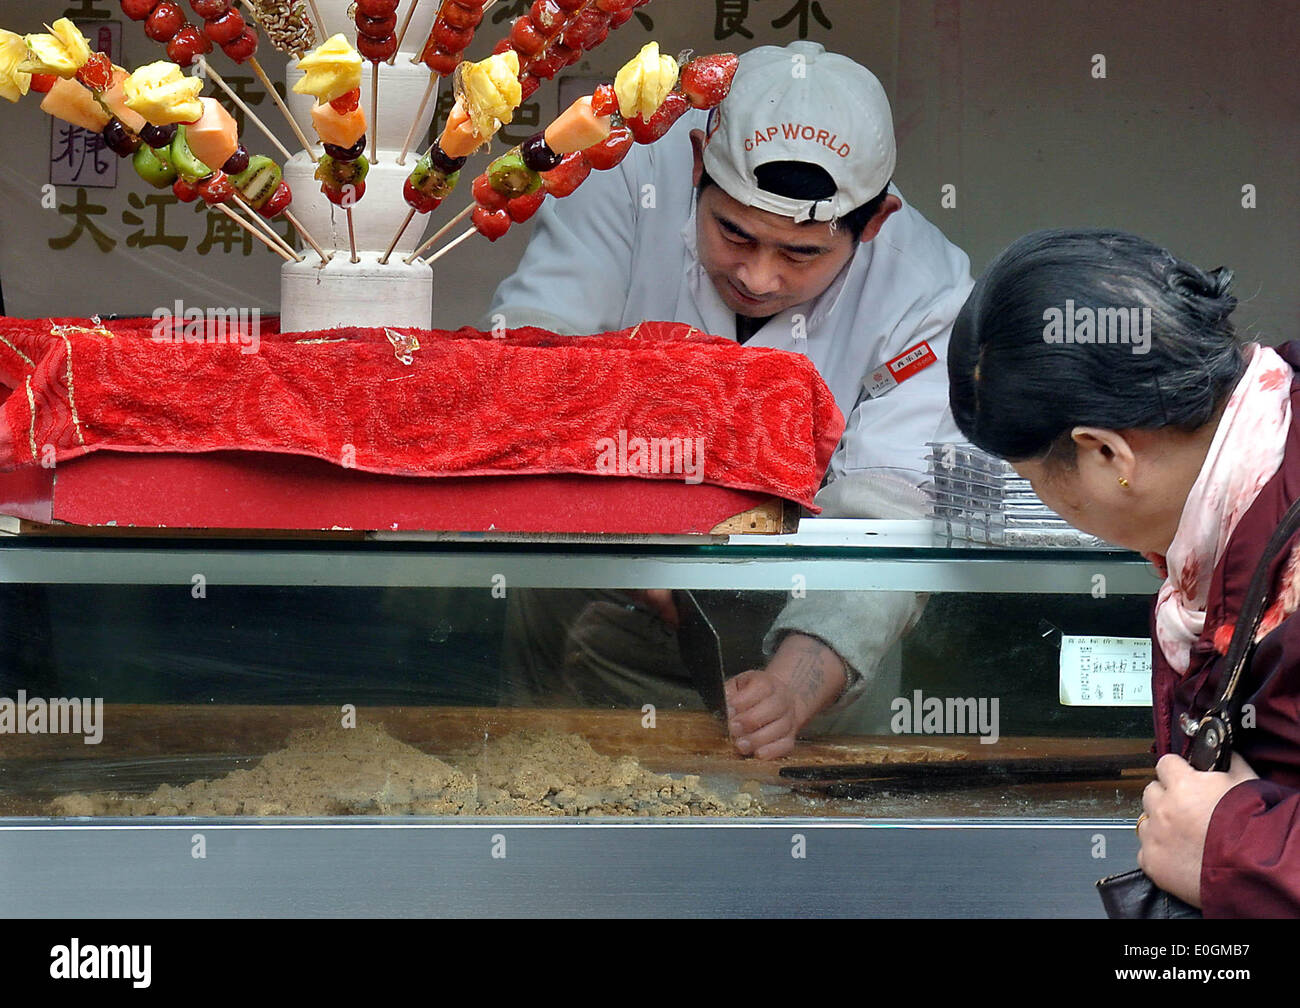 (140513) -- BEIJING, May 13, 2014 (Xinhua) -- Photo taken on Nov. 28, 2013 shows a worker serving peanut candy for a customer in Fuzhou, capital of southeast China's Fujian Province.   One of the most popular types worldwide, Chinese food is famous for its taste and variety, with an unparalleled range of ingredients, techniques, dishes and eating styles. The history of Chinese food stretches back for thousands of years and has changed from period to period and in each region according to climate, tradition and local preferences. Chinese people pride themselves on eating a wide variety of foods - Stock Image